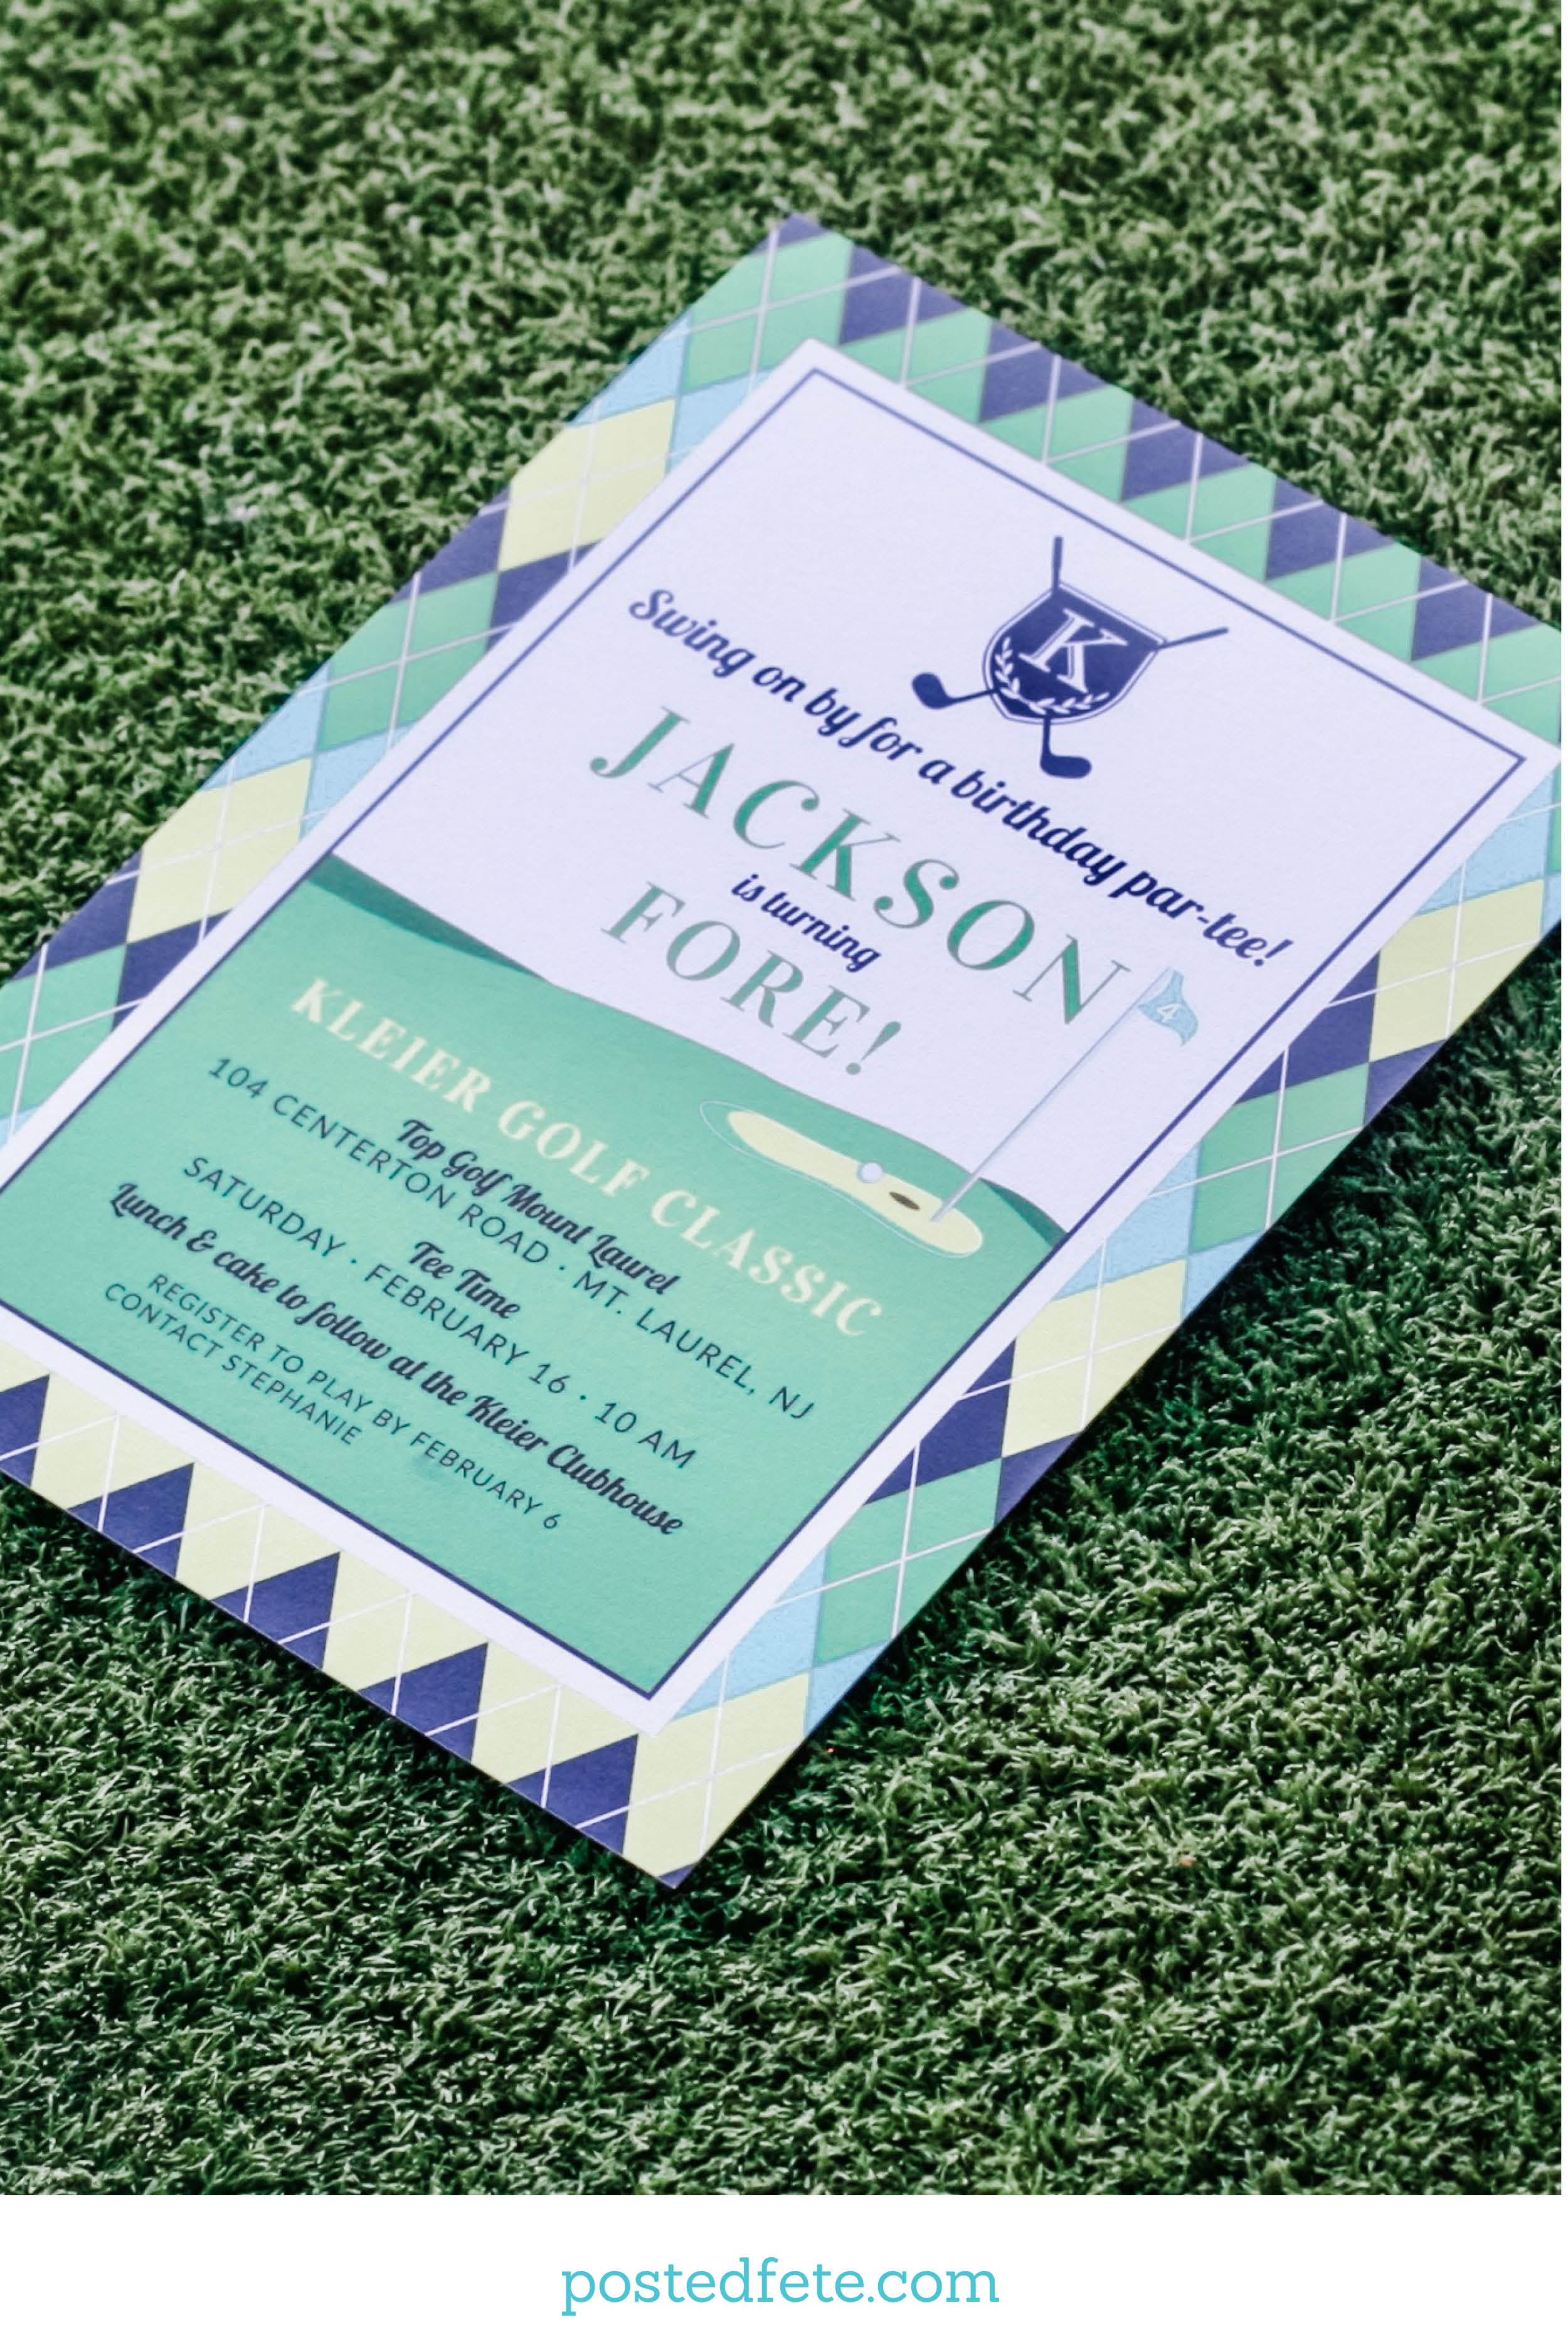 Argyle golf party invitation for a hole in one first birthday, or a golf themed Golf Fore Birthday. | By Posted Fete | #golfparty